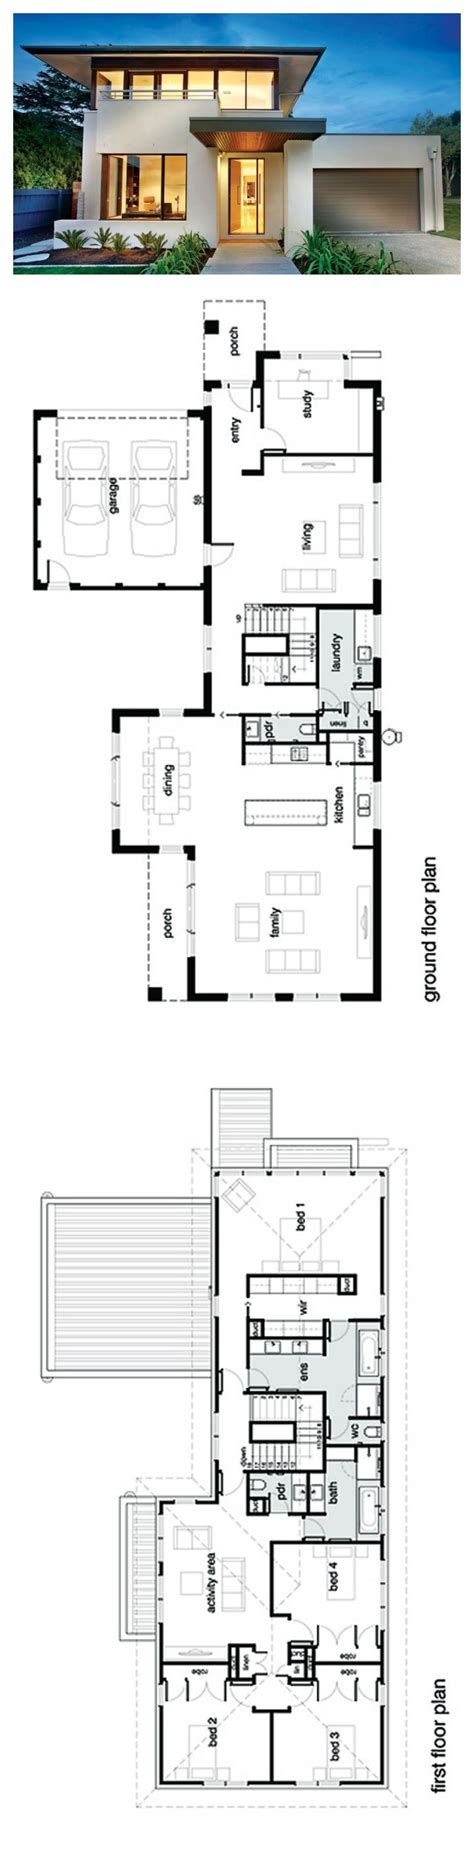 new house plans best 25 modern house plans ideas on pinterest